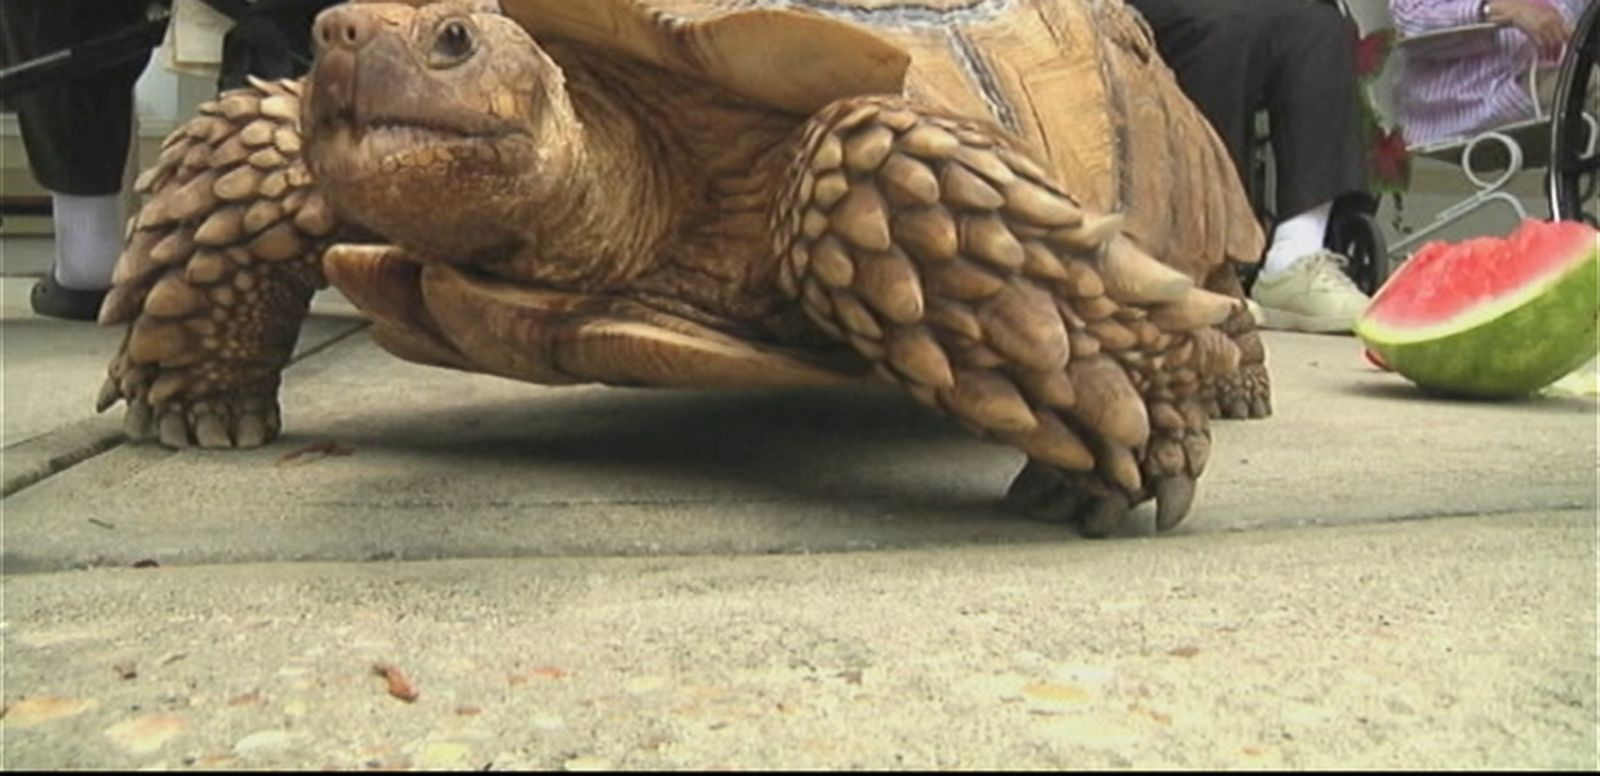 VIDEO: Shelly the tortoise delights residents and visitors at a nursing home in DeFuniak Springs, Florida.